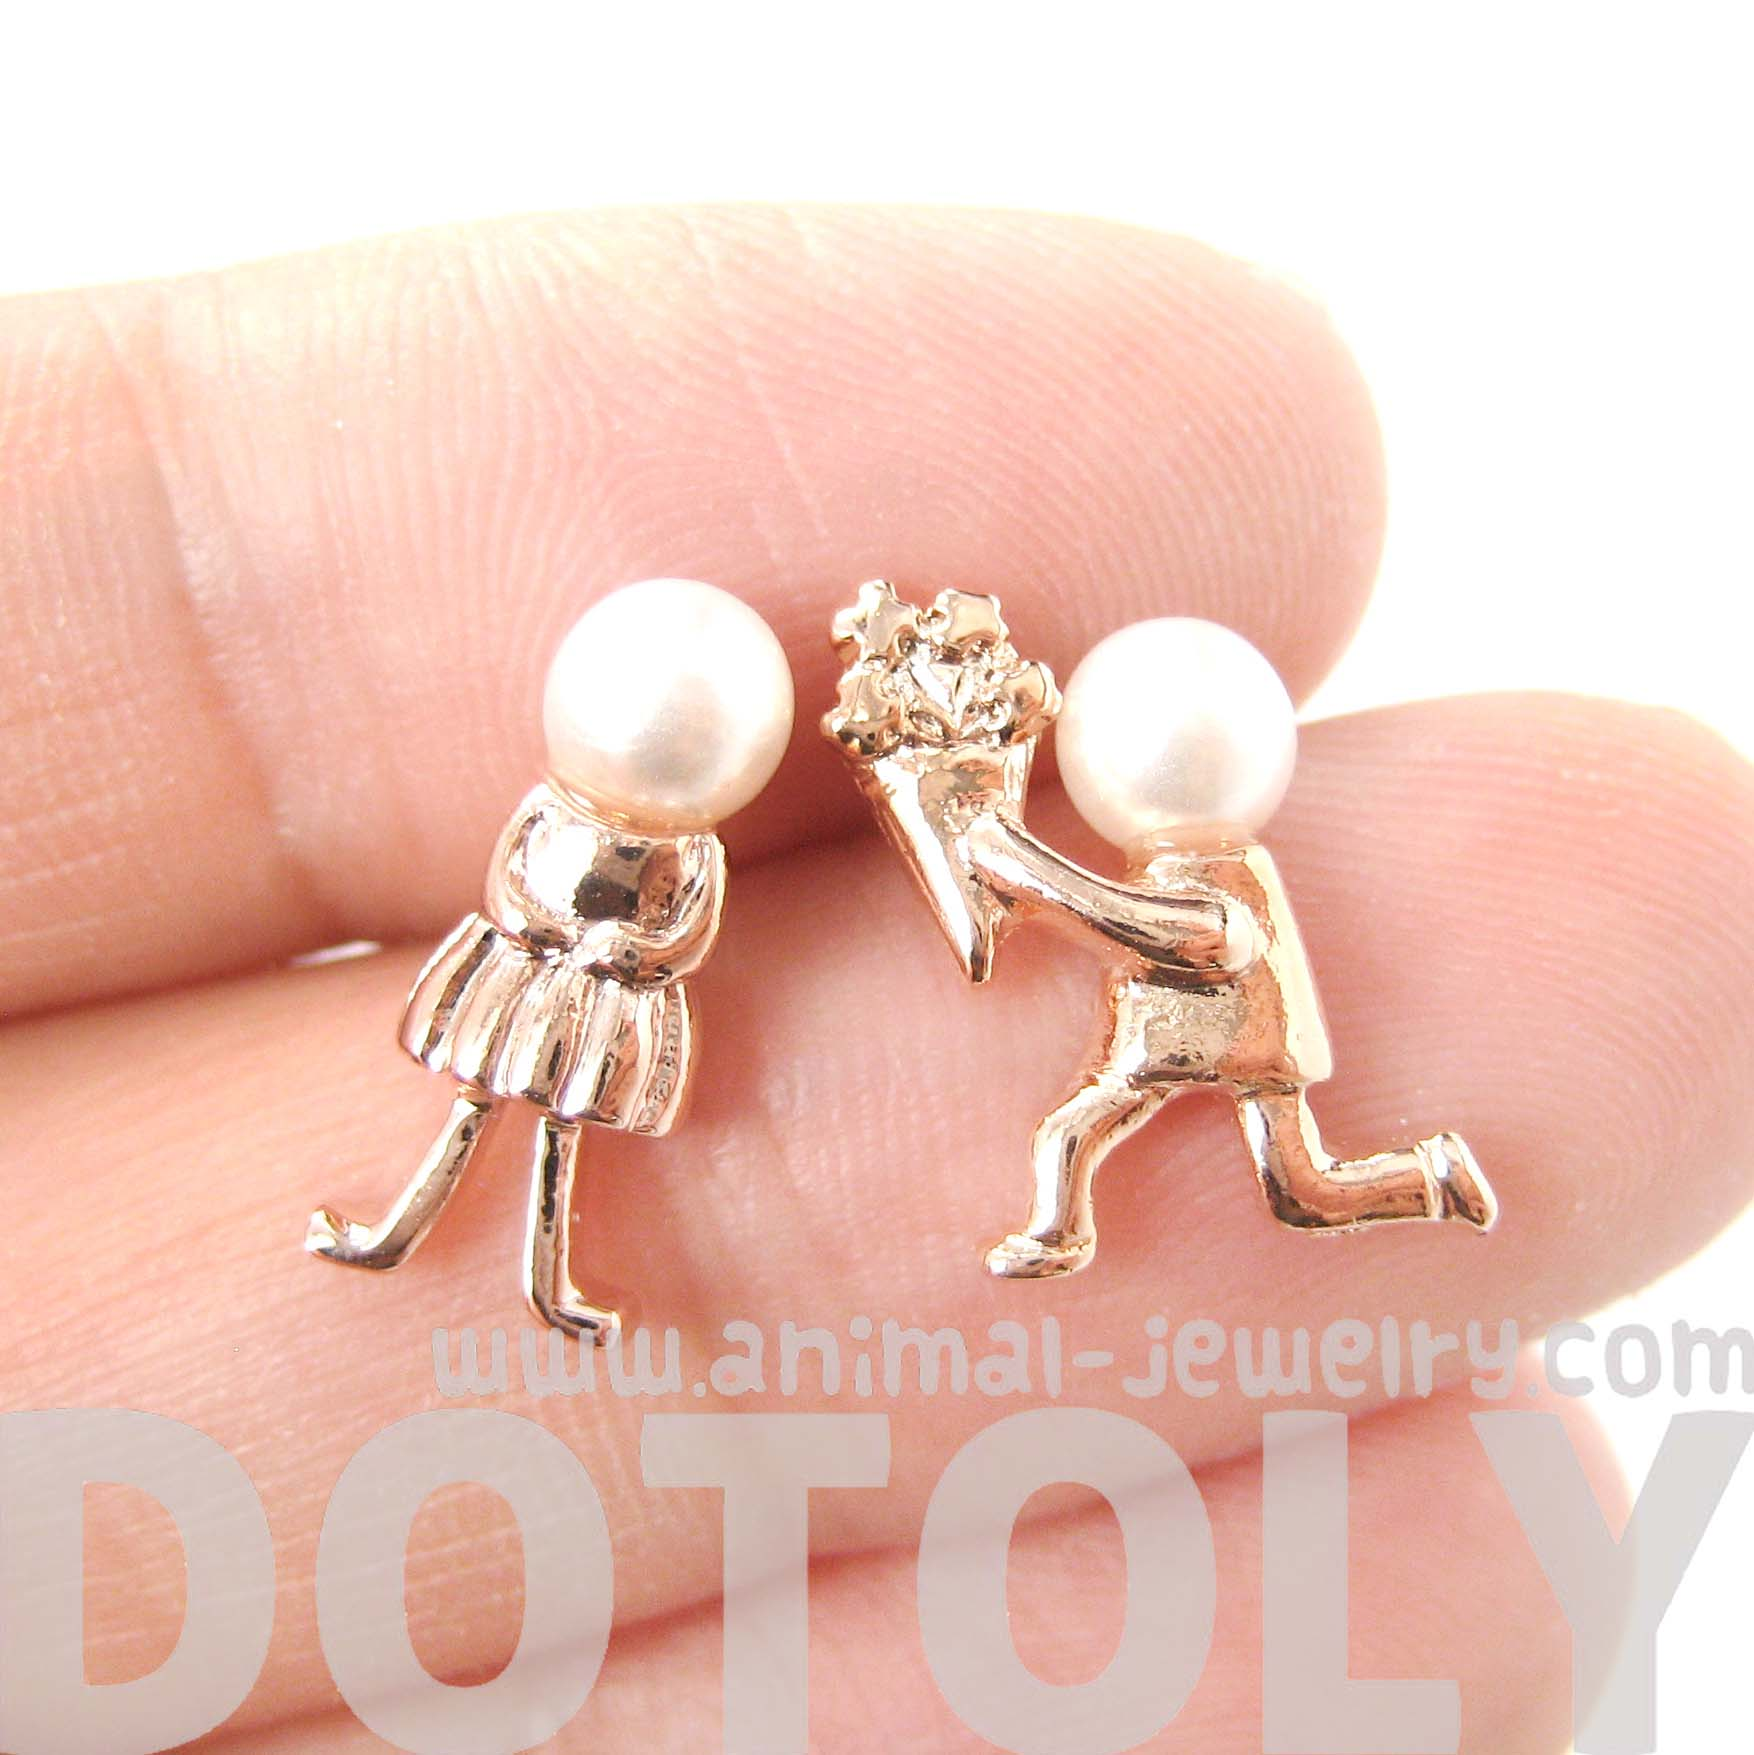 Boy And Girl Proposal Stud Earrings In Rose Gold With Pearl Details   Thumbnail 1